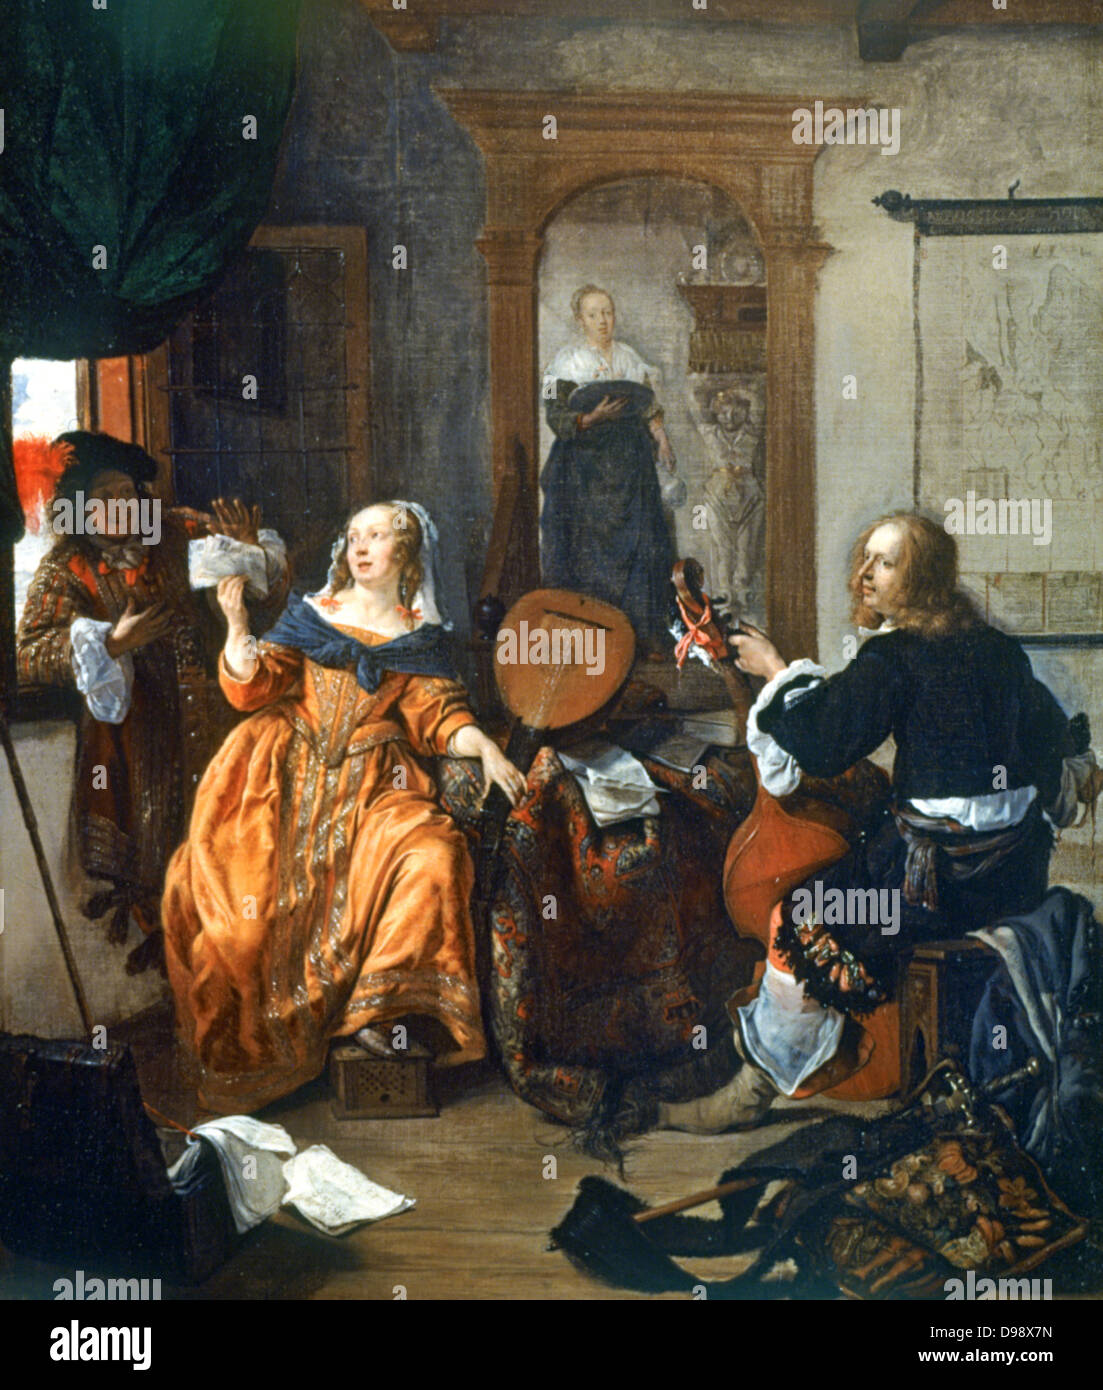 A Music Party', 1659. Gabriel Metsu (1629-1667) Dutch painter. Dutch  interior with woman with lute showing music to man on